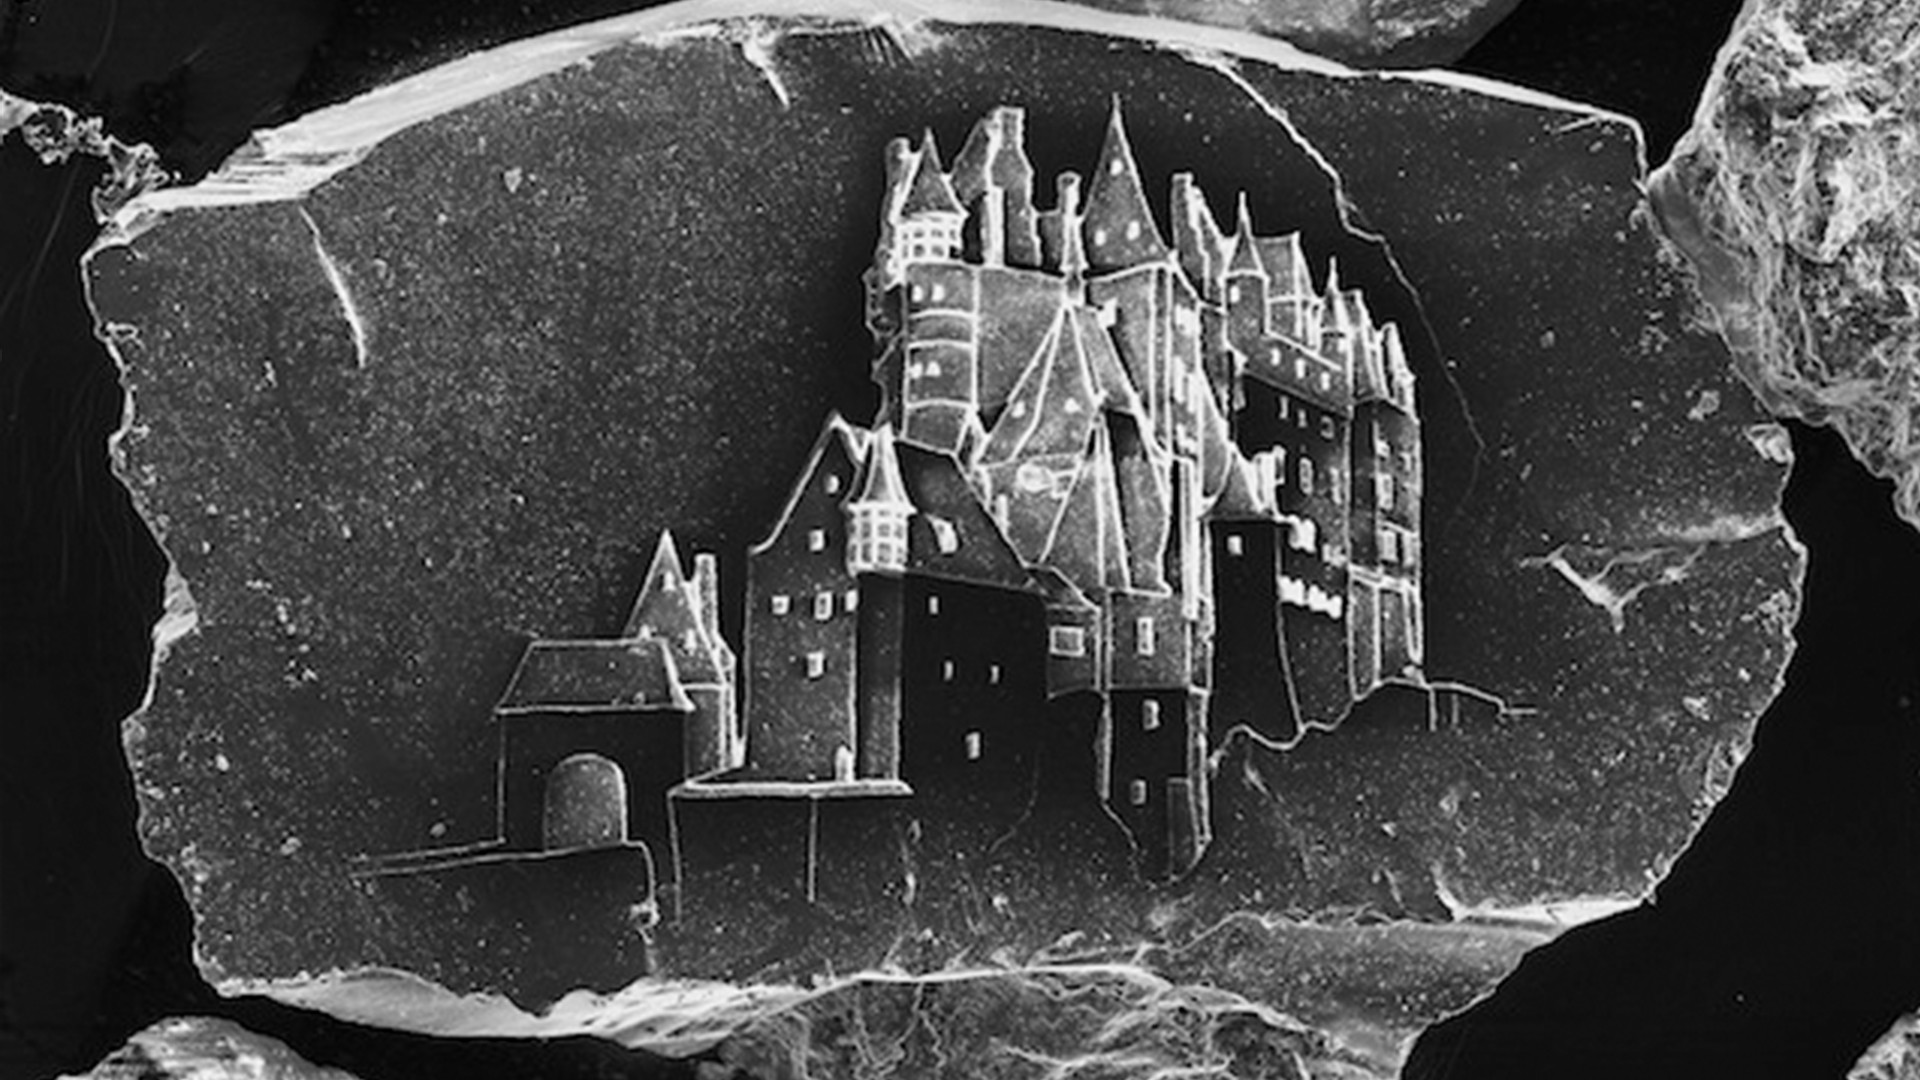 Etching Sand Castles on a Single Grain of Sand